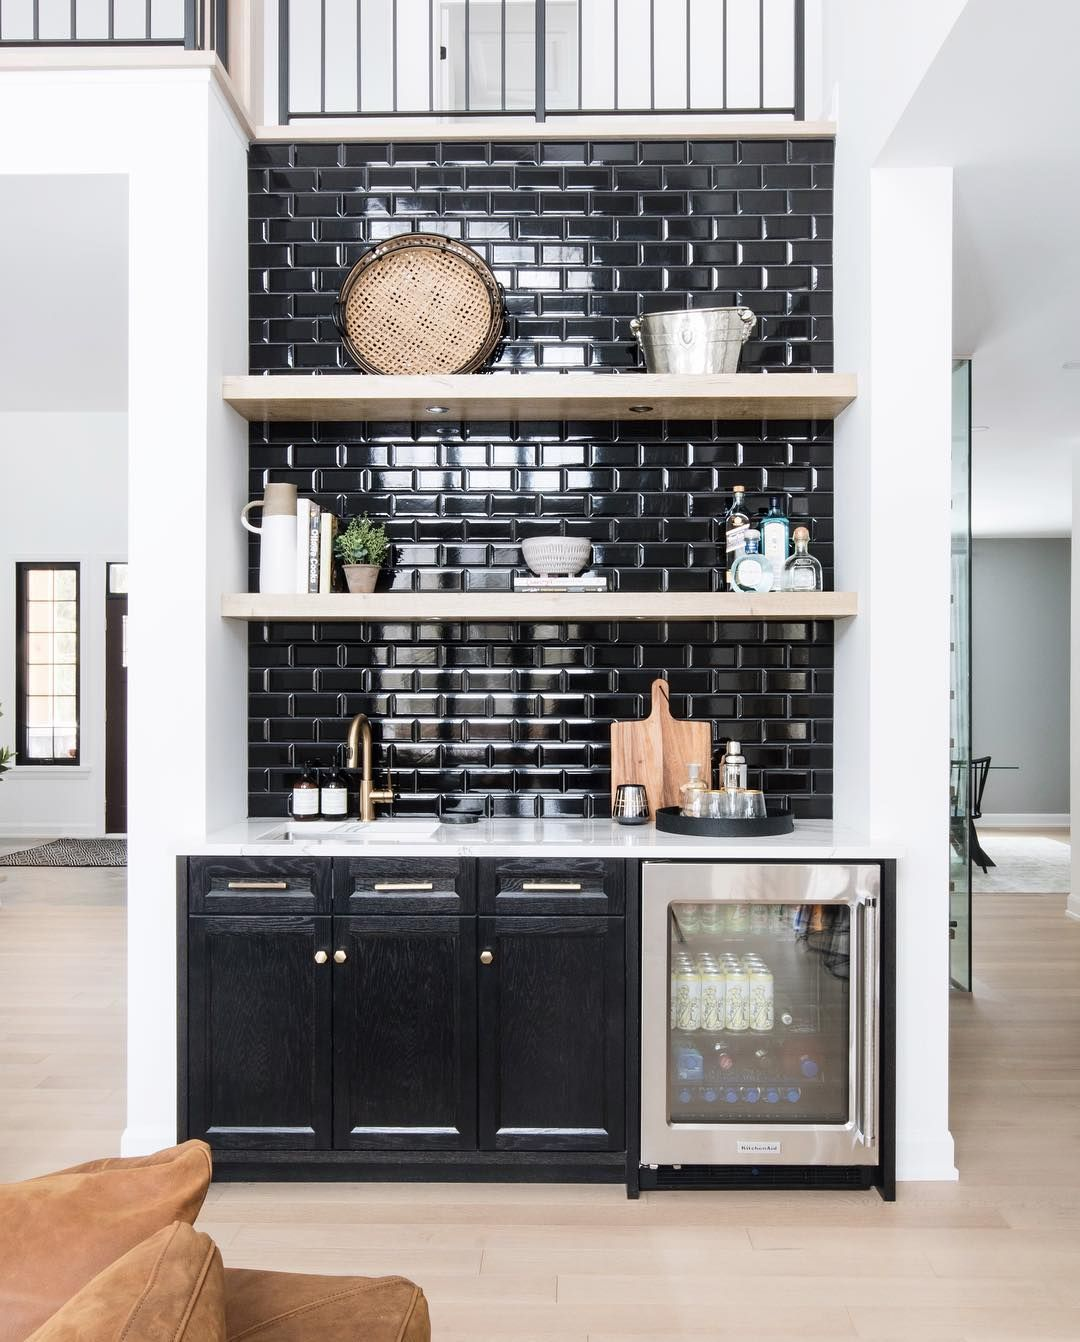 Leclair Decor On Instagram Drink Anyone Wet Bar In The Leclaircarp Project Living Room Living Room Bar Home Wet Bar Modern Home Bar Wet bar in living room designs